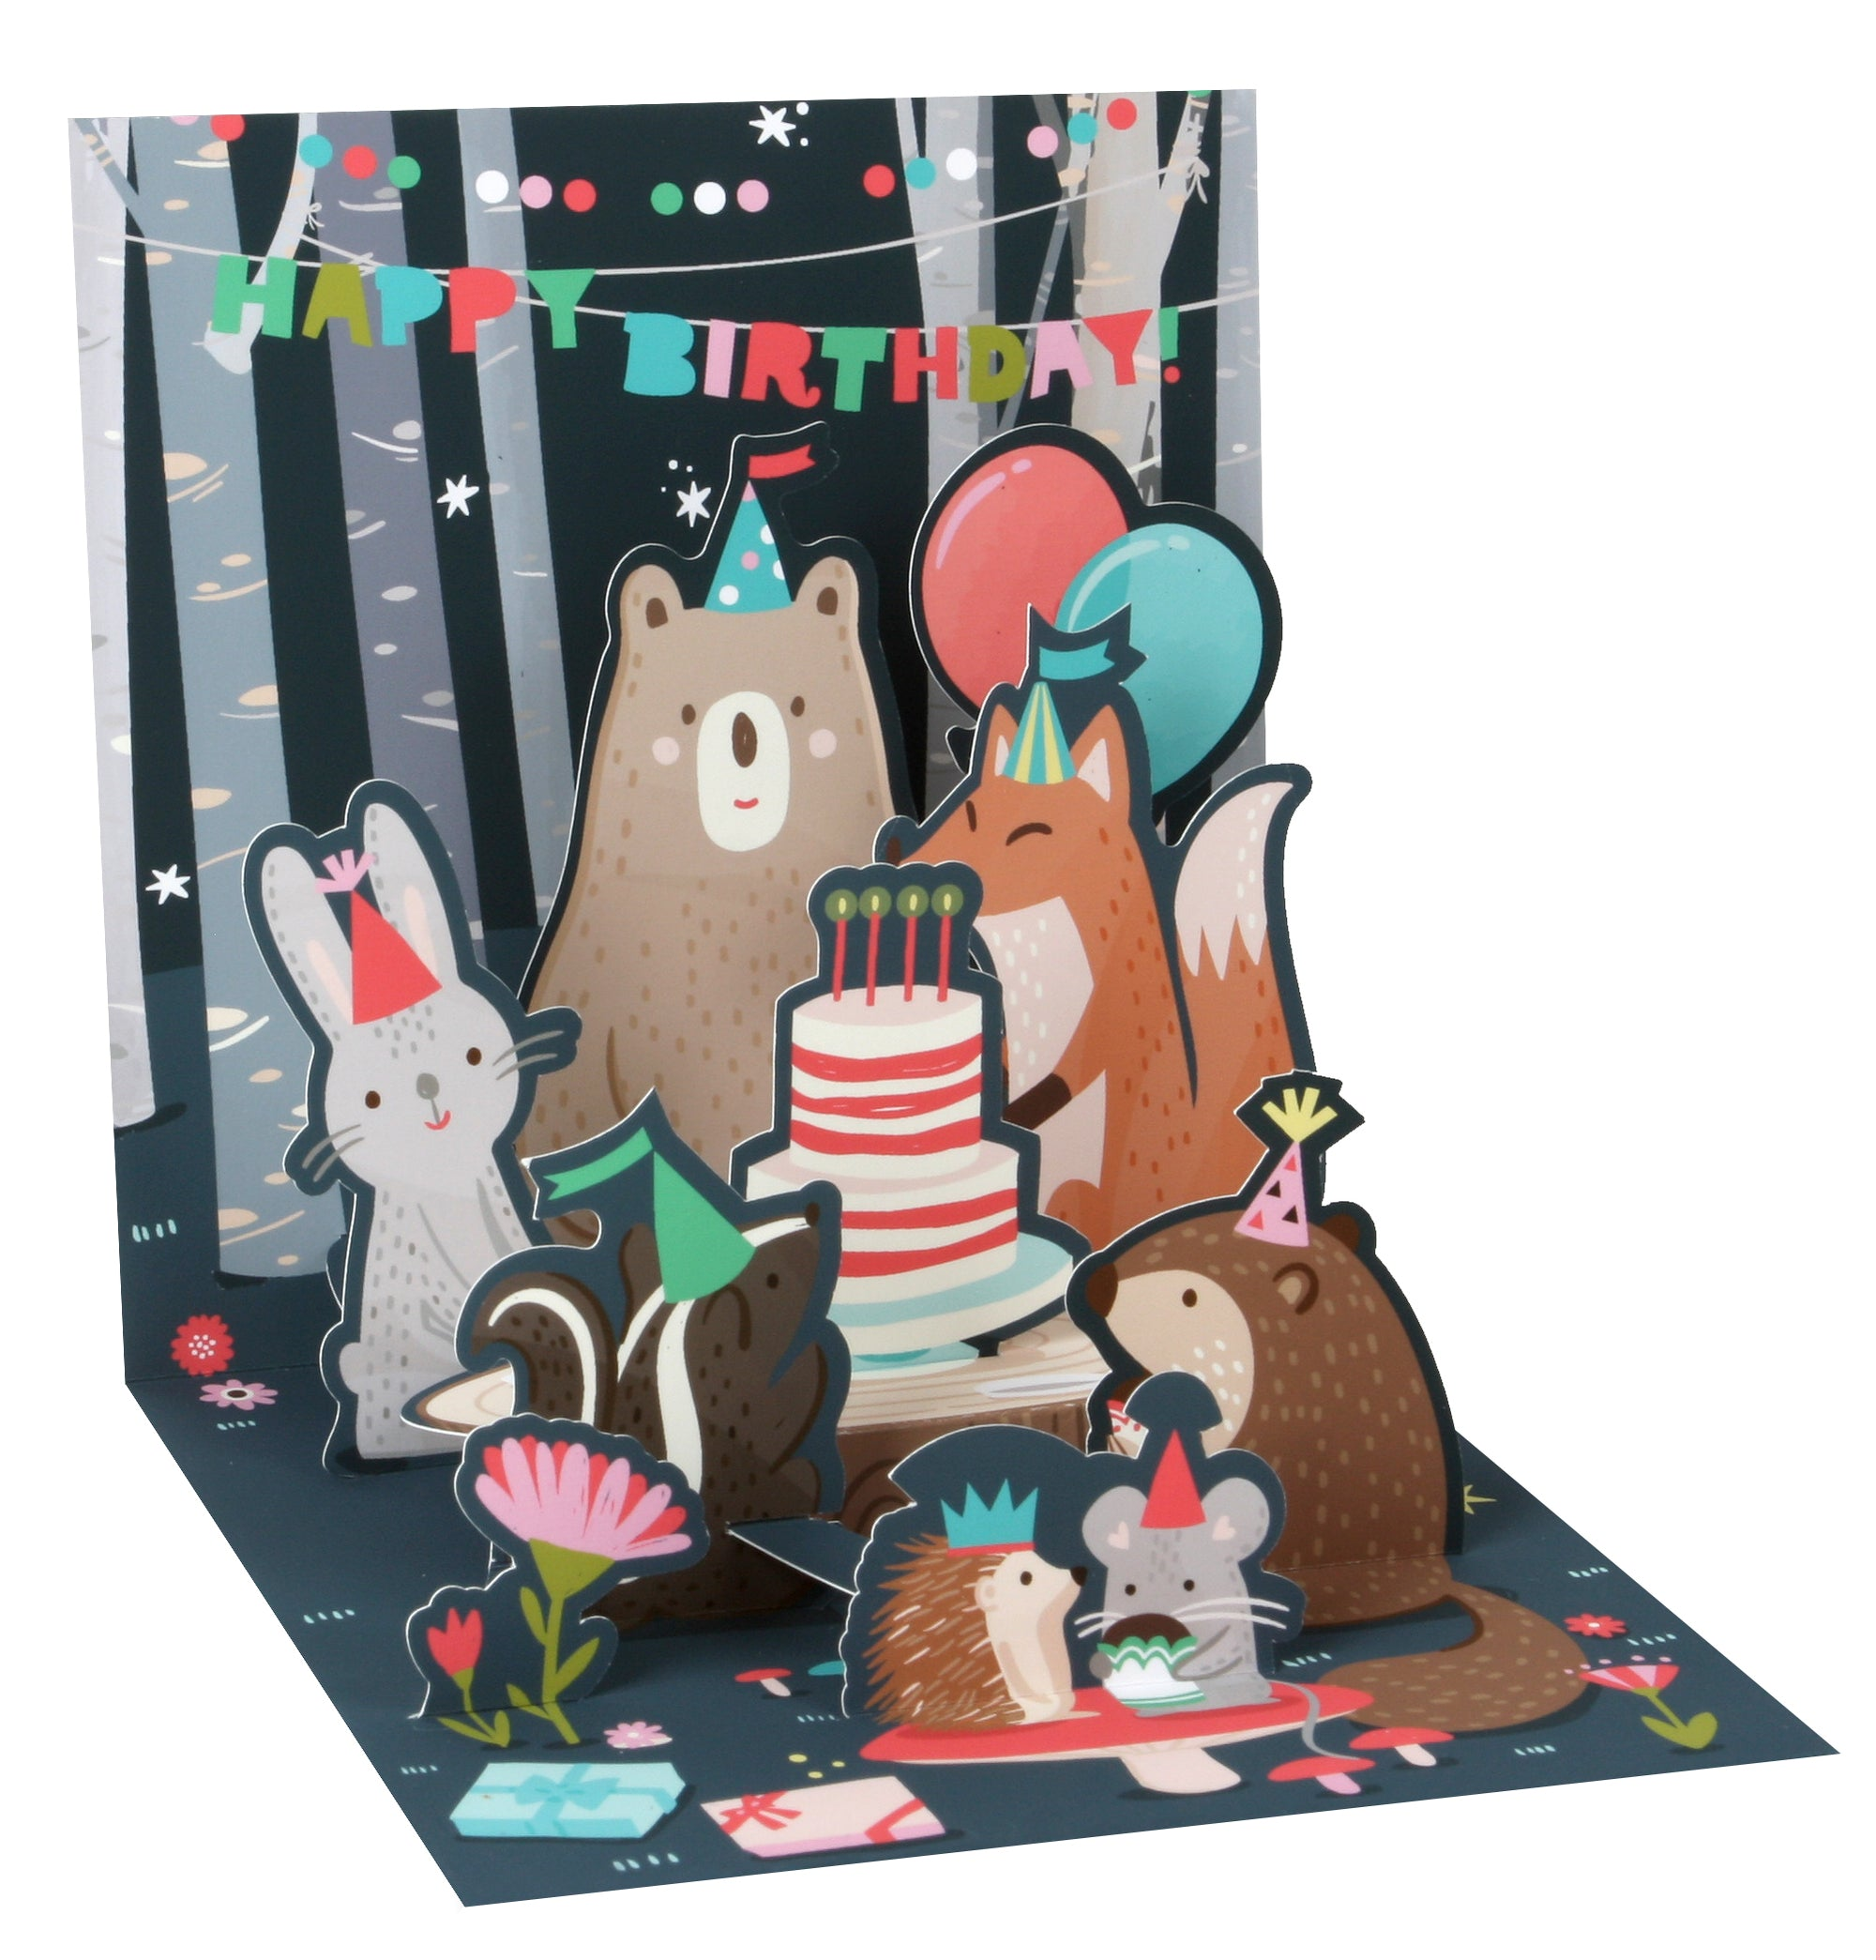 Lit Nocturnal Animals Birthday Pop-Up Card - Heart of the Home PA